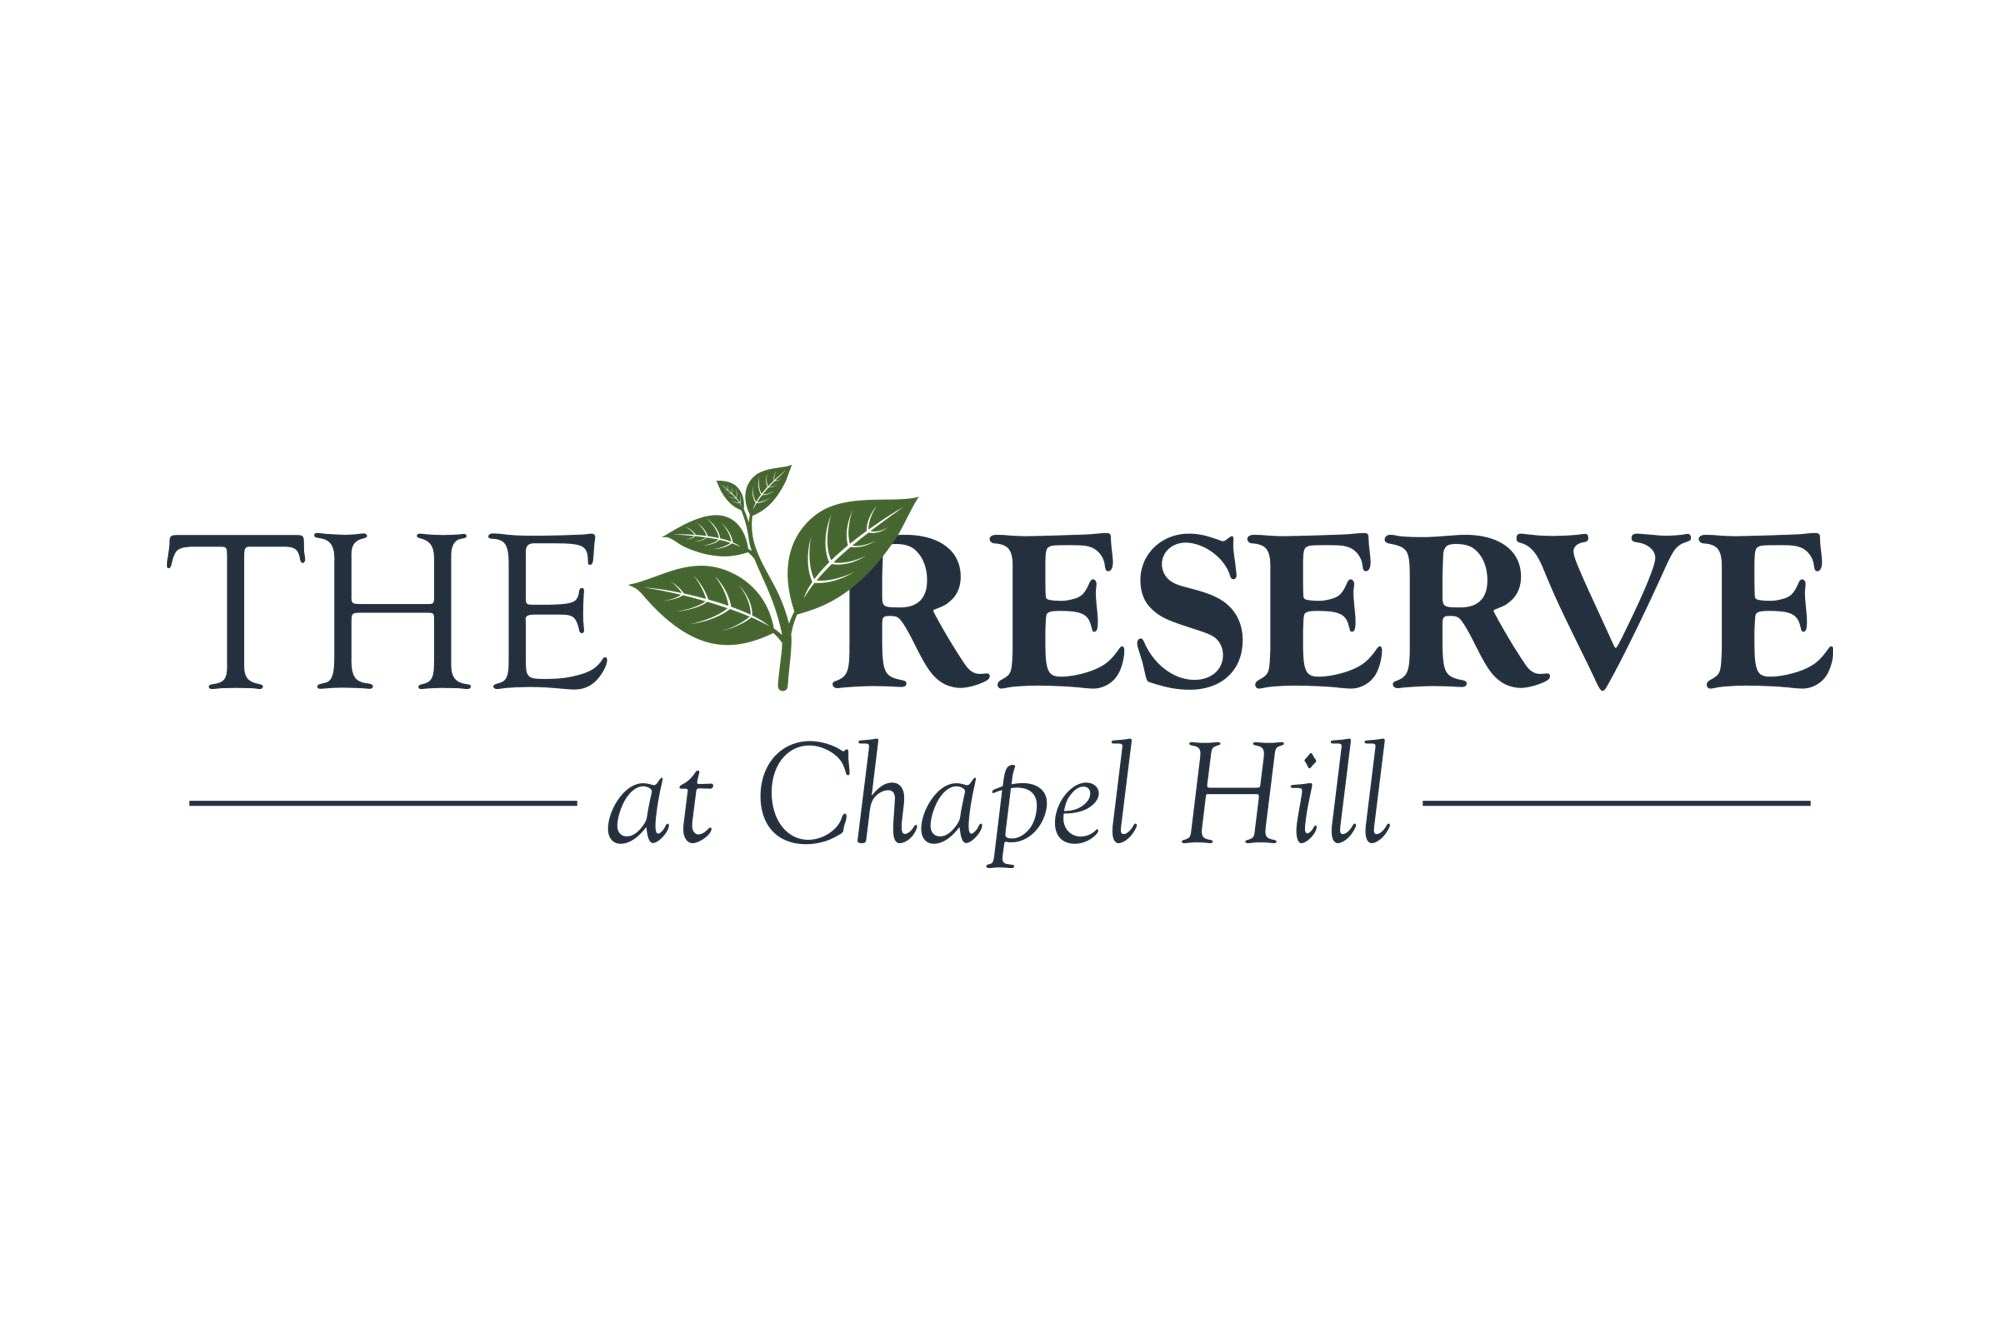 The Reserve at Chapel Hill - Coming Soon